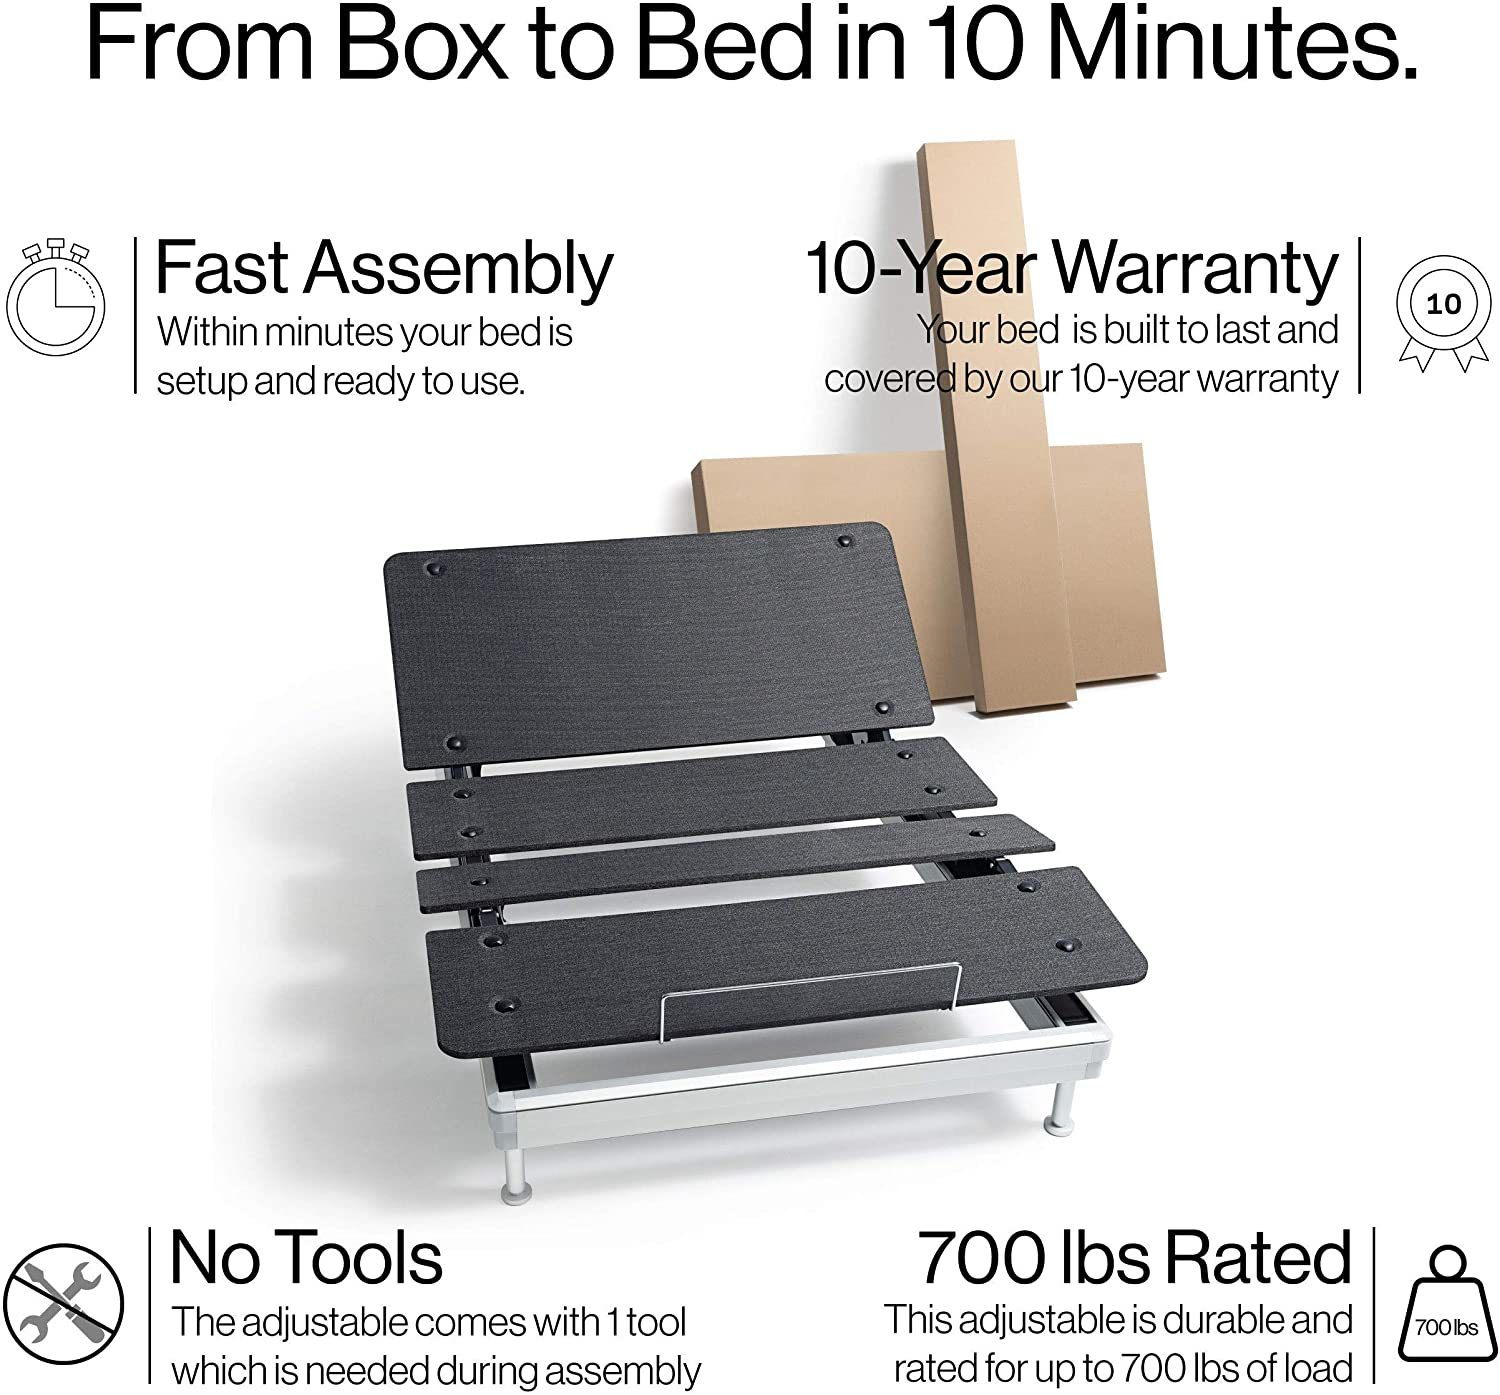 Yaasa Luxe Adjustable Bed Reviews - Important features